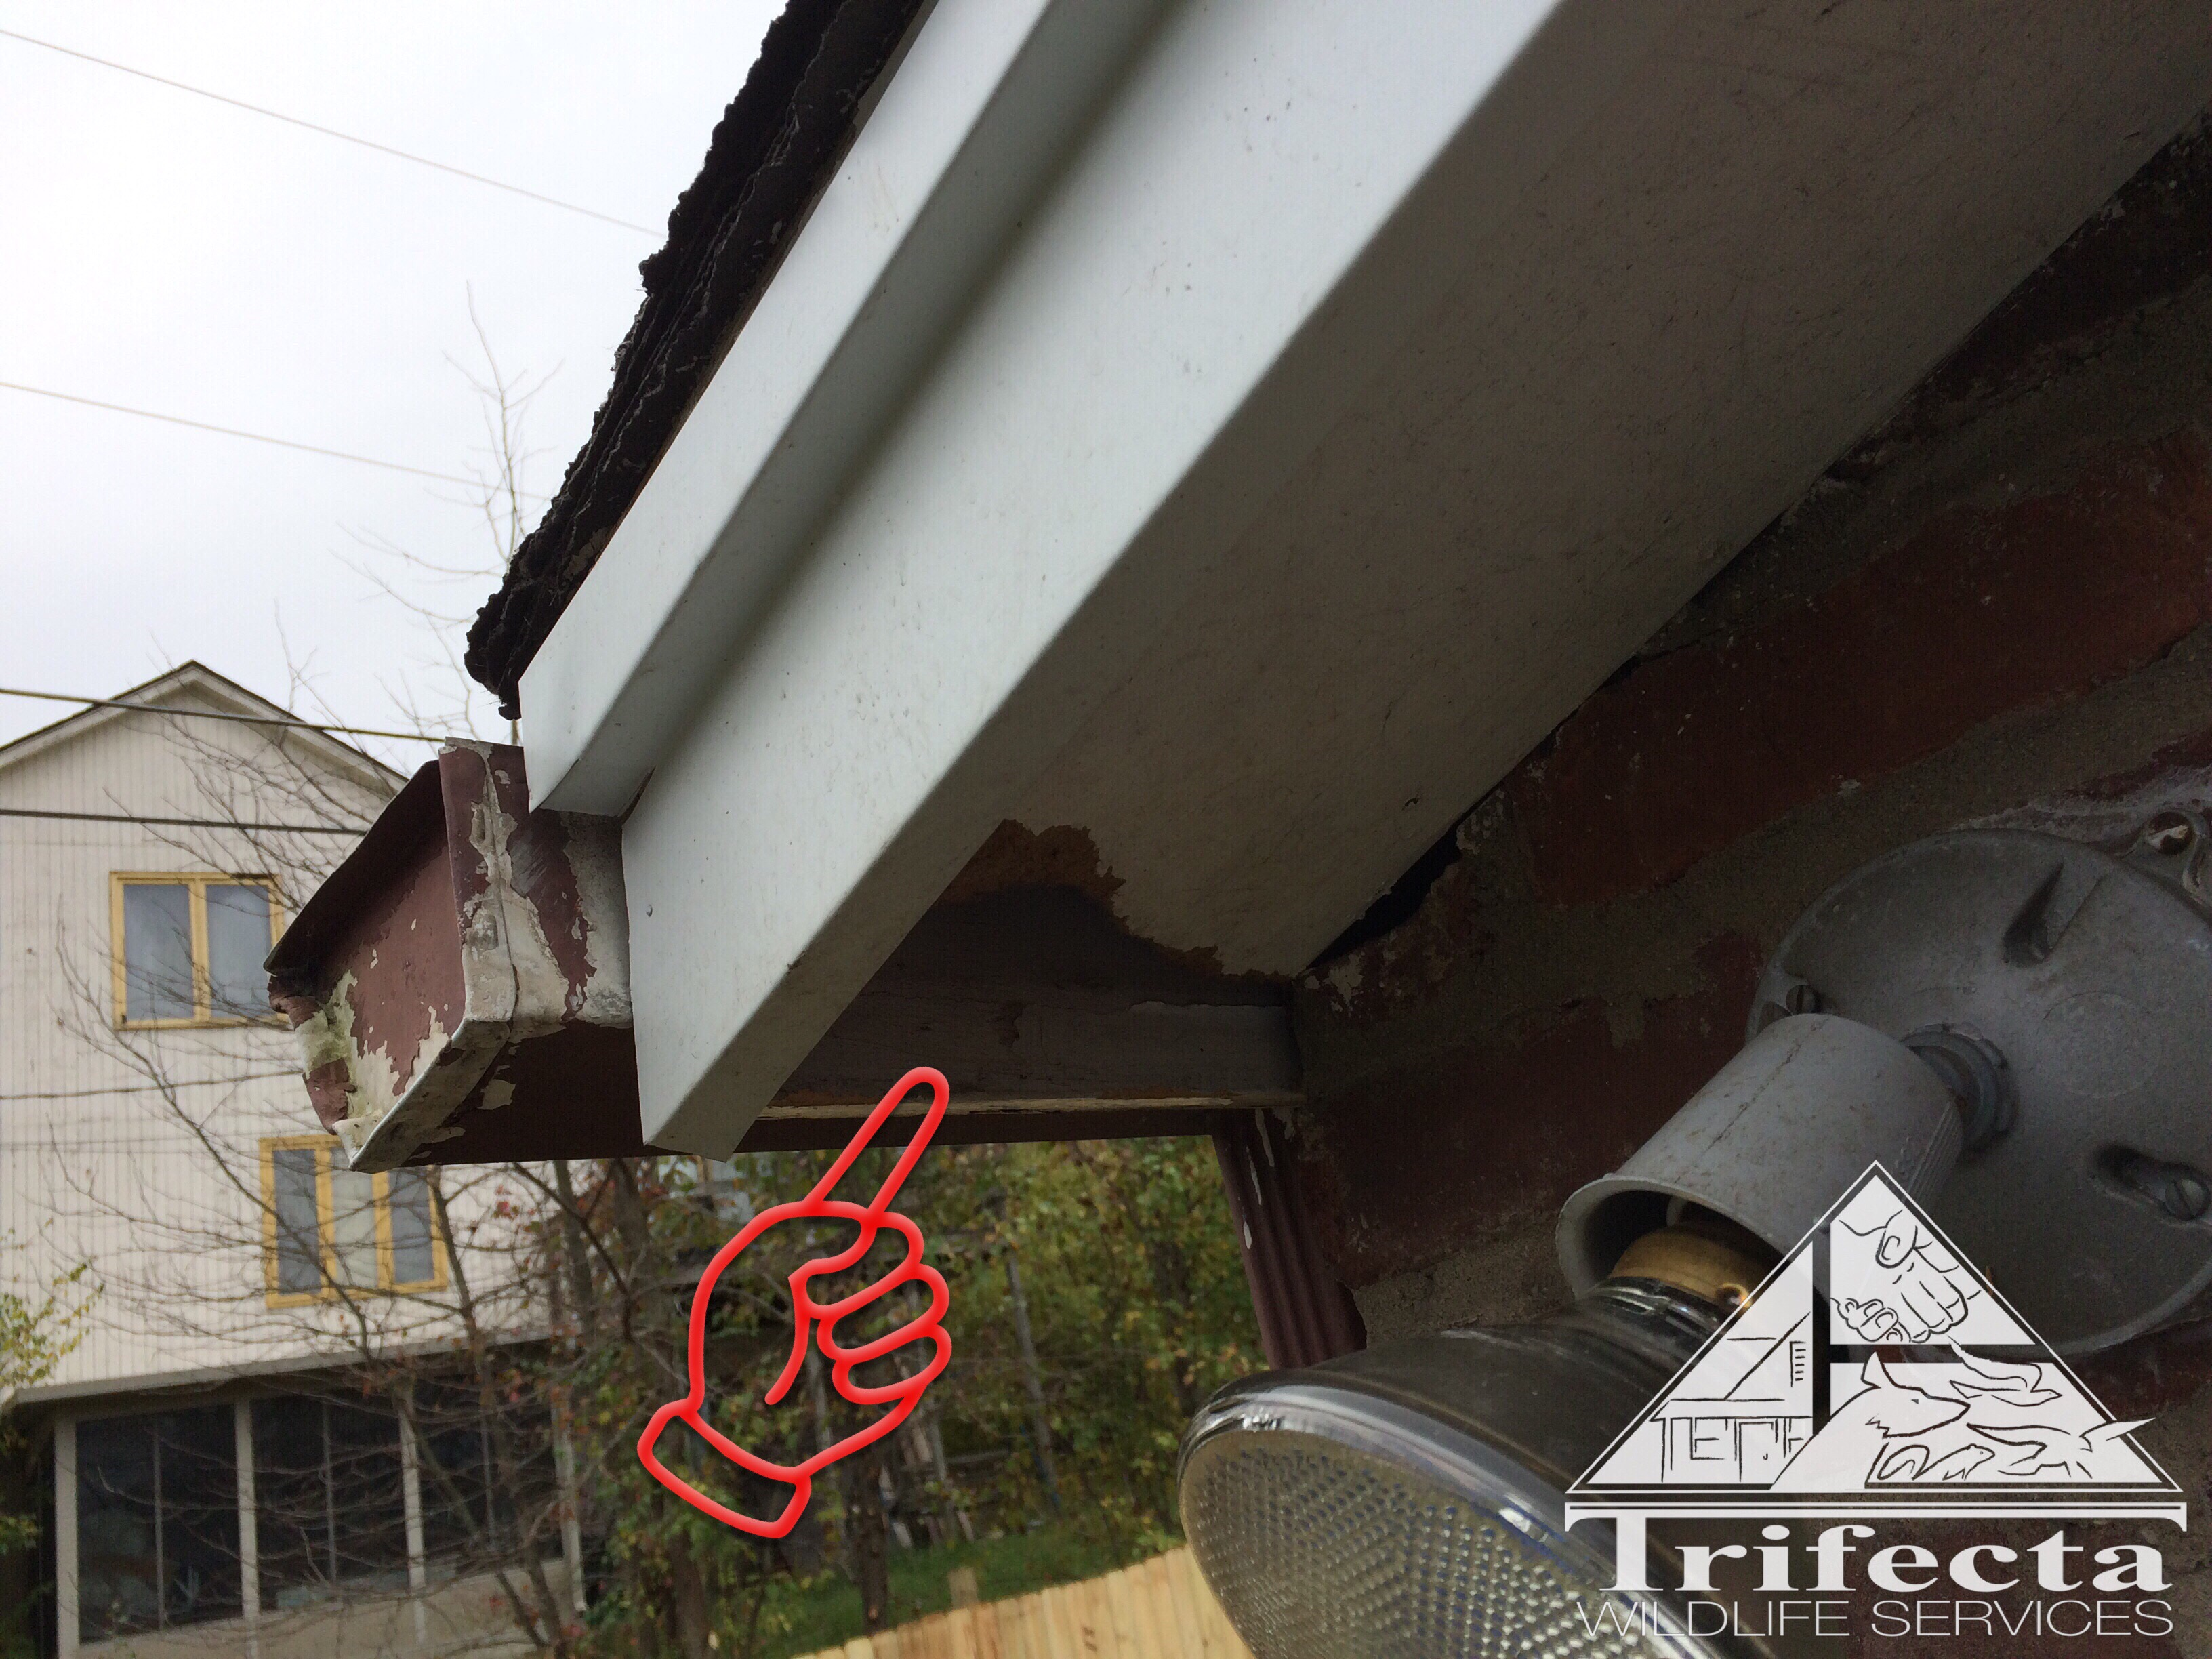 Gray squirrel entry point through damaged soffit